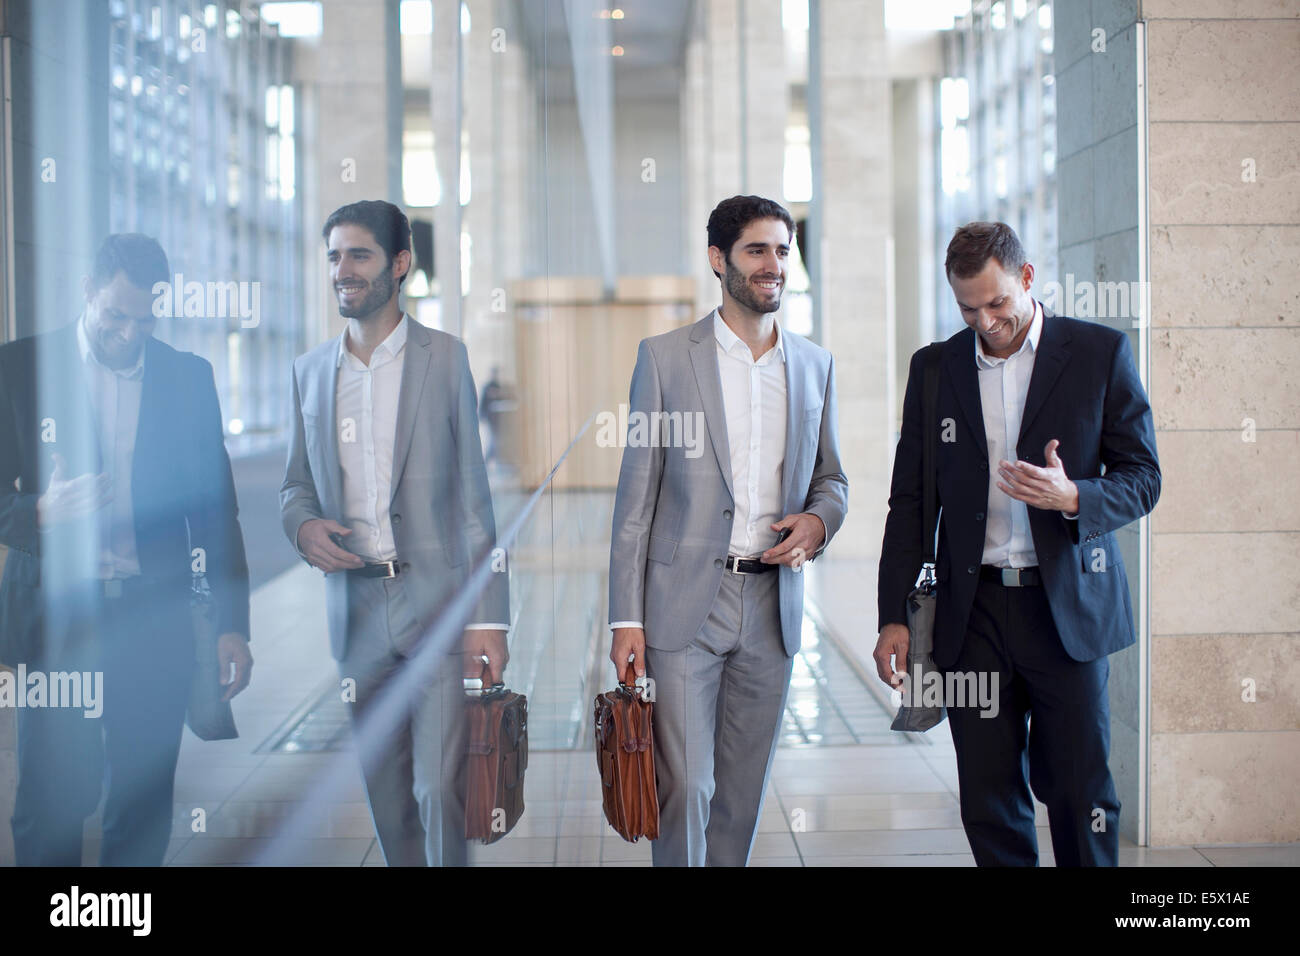 Two young businessmen walking and chatting in conference centre - Stock Image